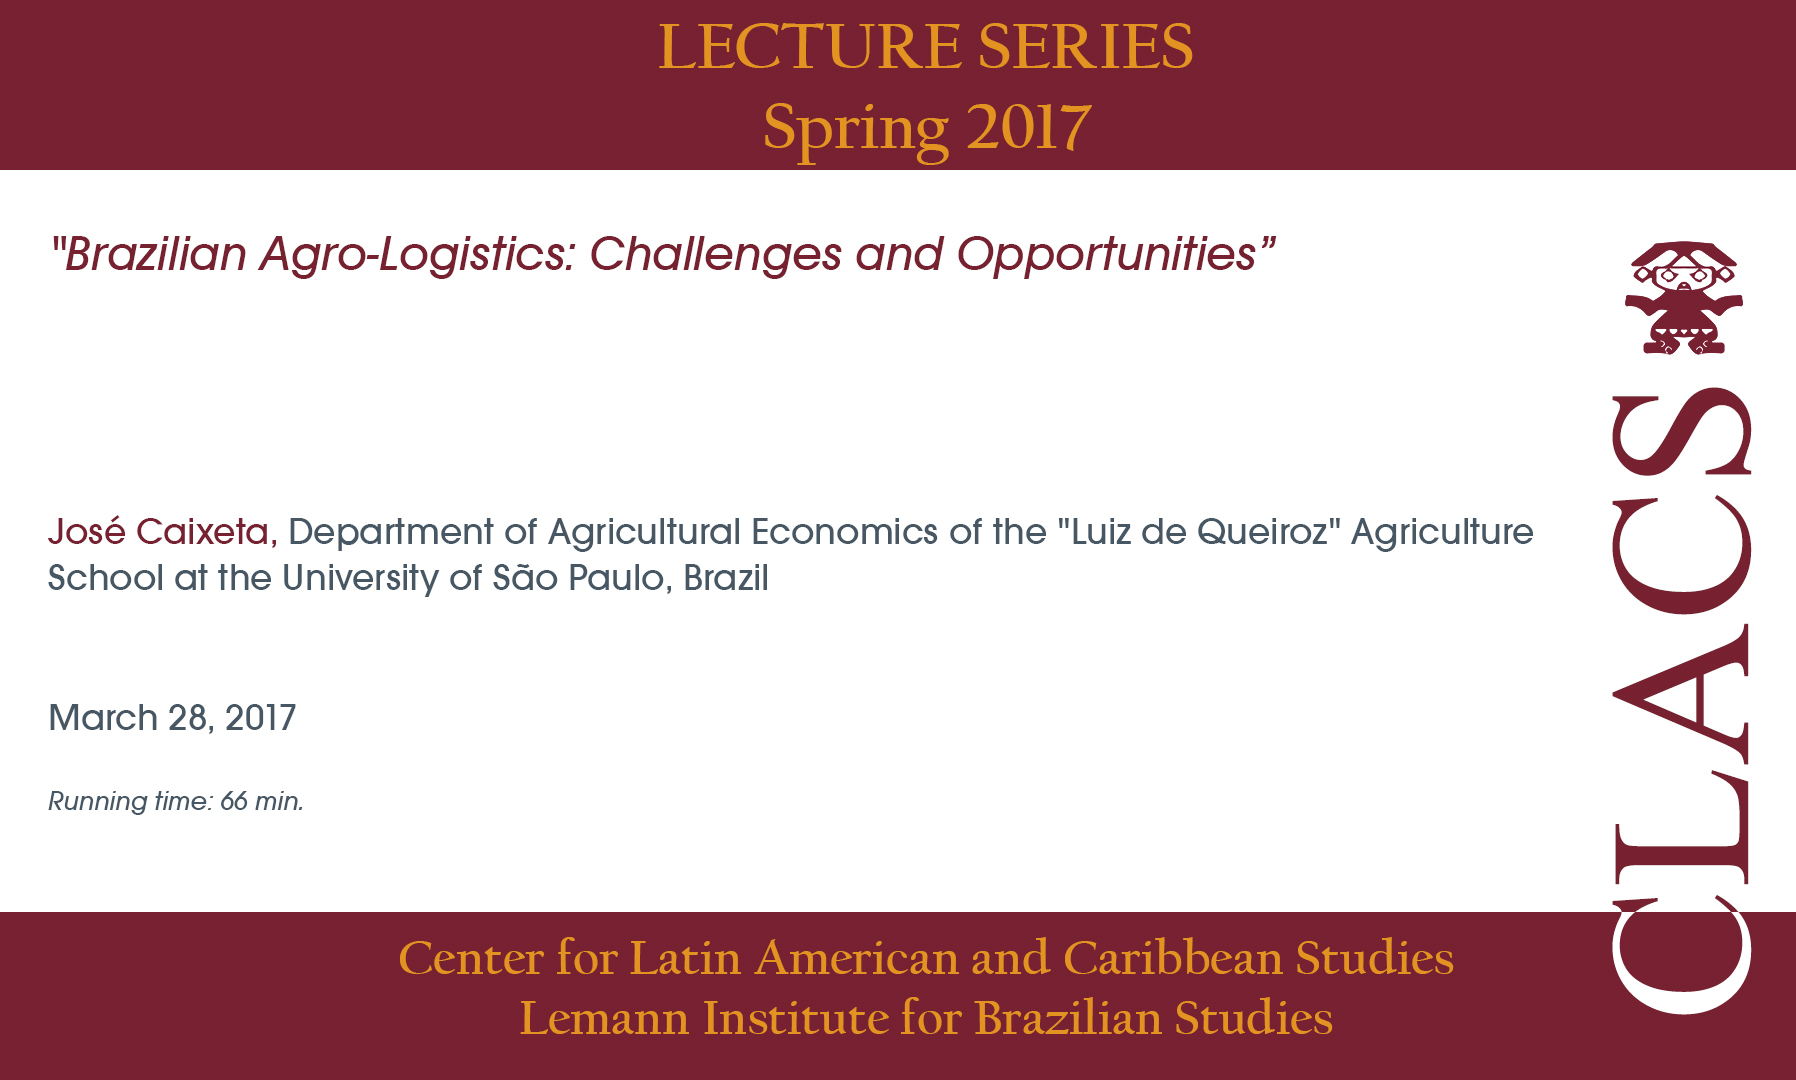 Brazilian Agro-Logistics: Challenges and Opportunities